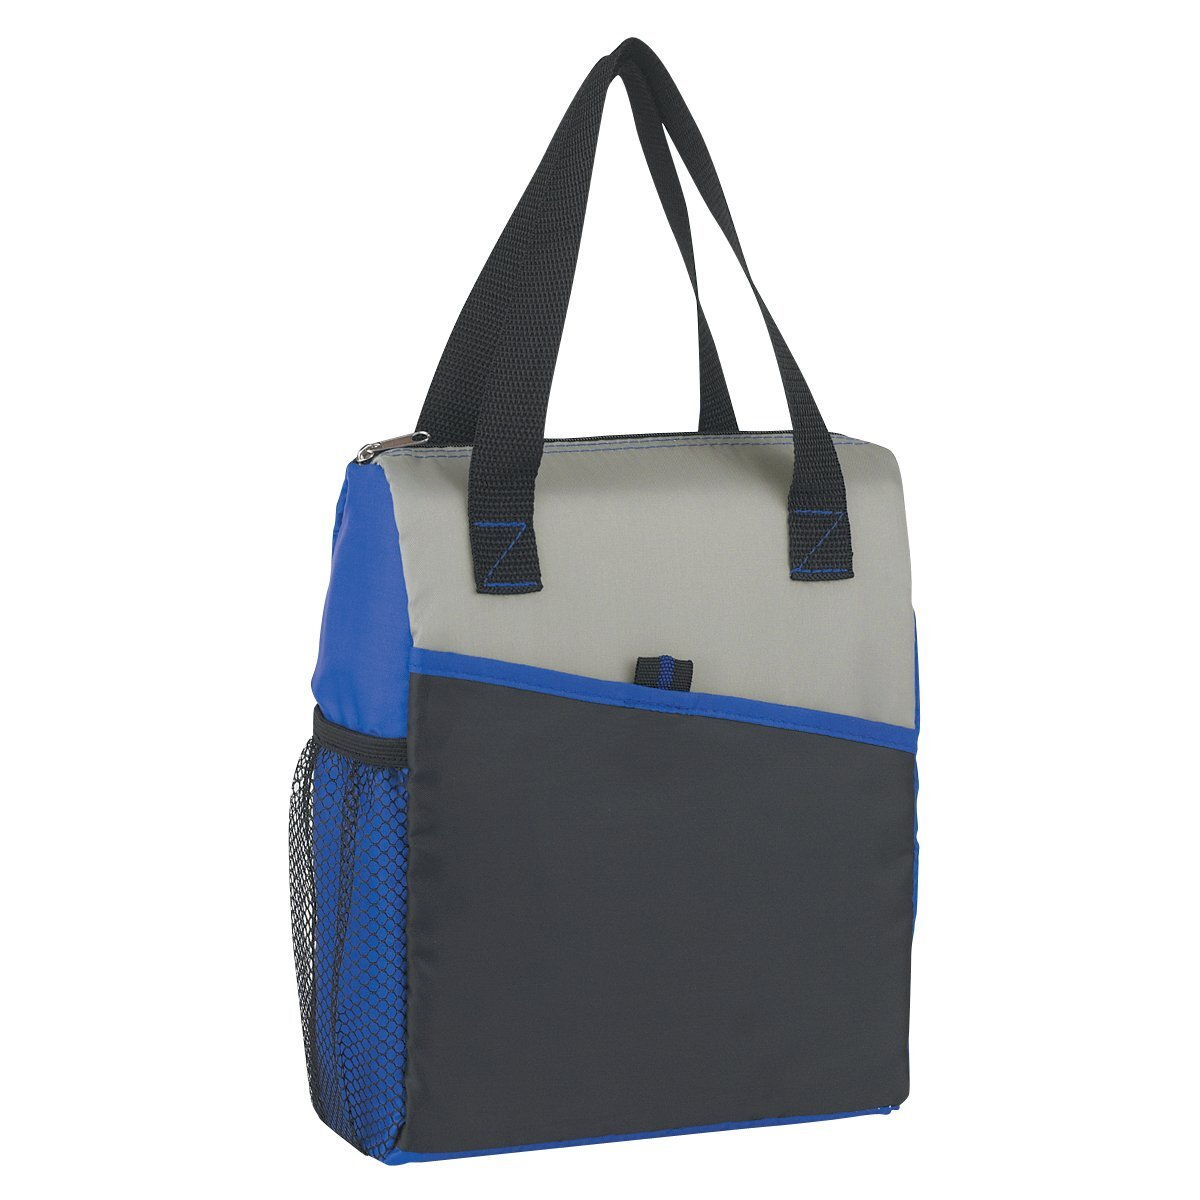 Harbor Cooler Bag